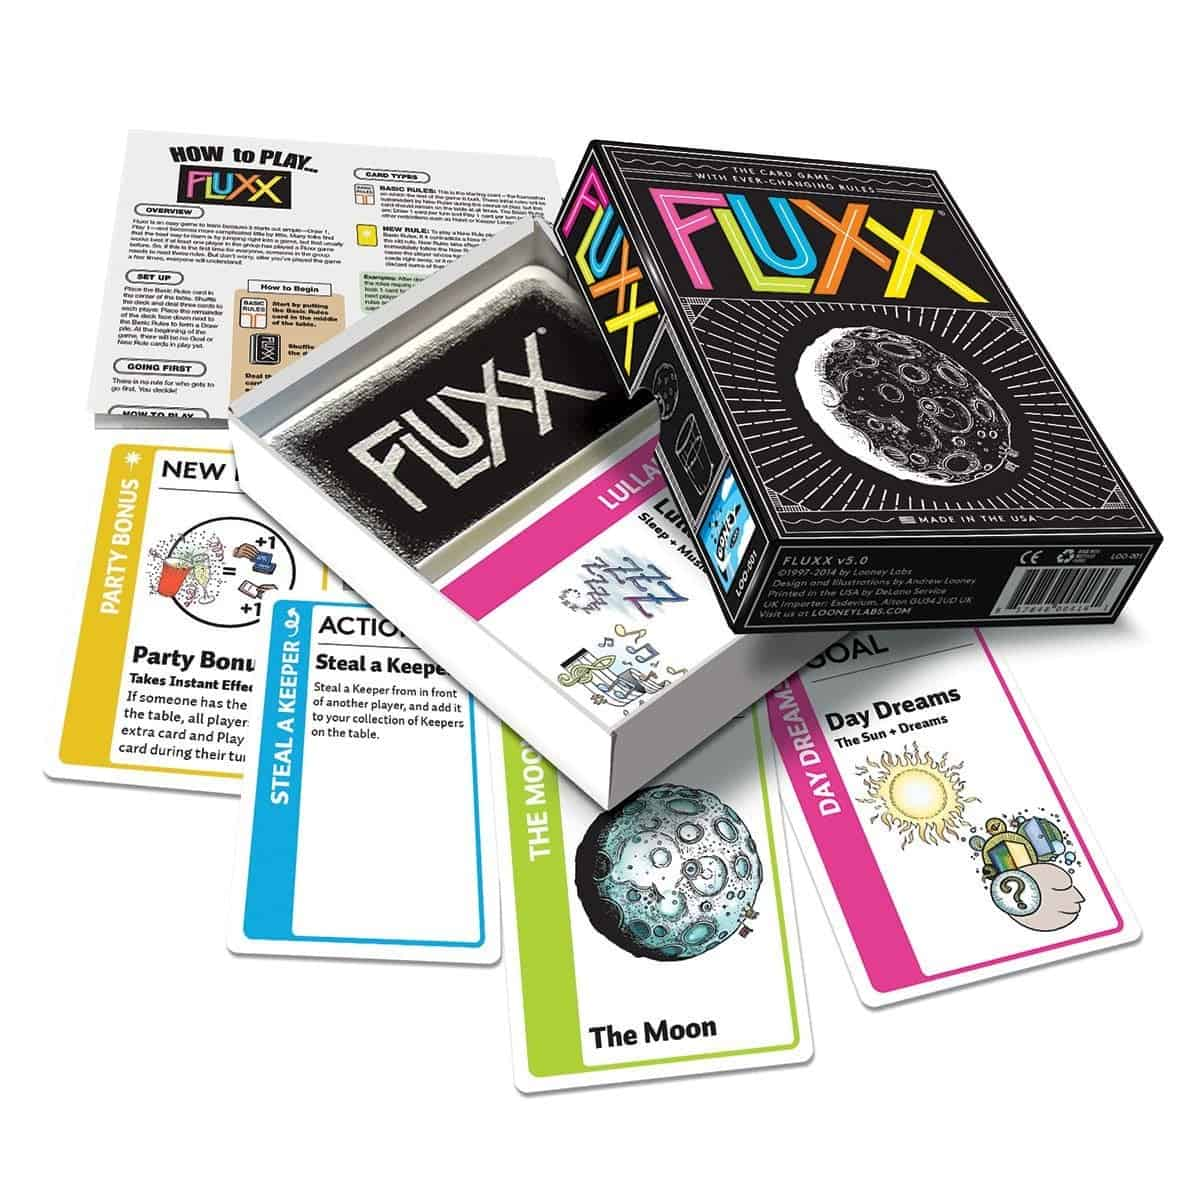 10+ Amazing Card Games for your Family: Fluxx | www.thepinningmama.com